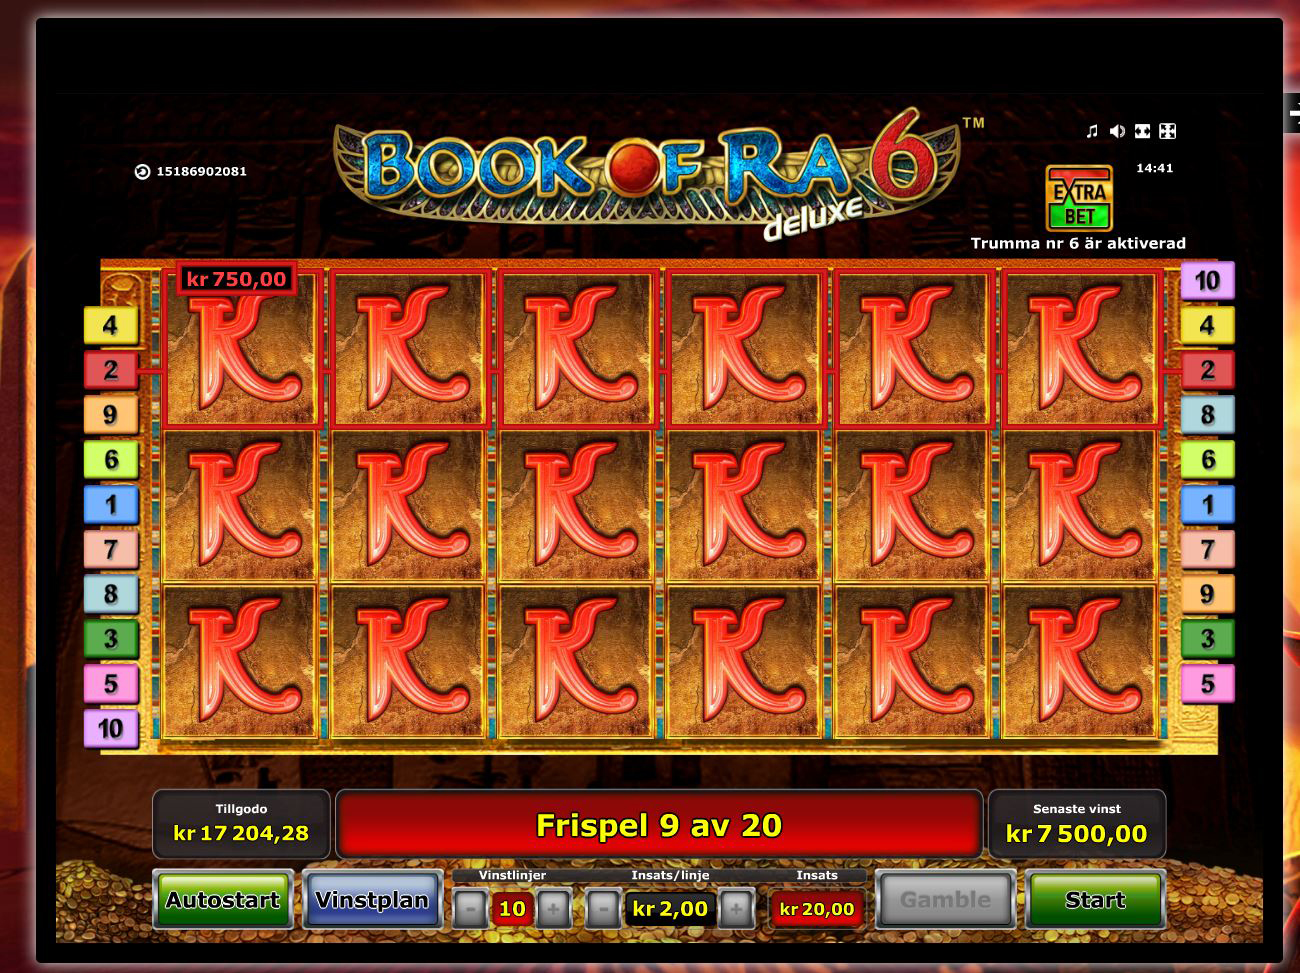 book of ra online casino no deposit bonus